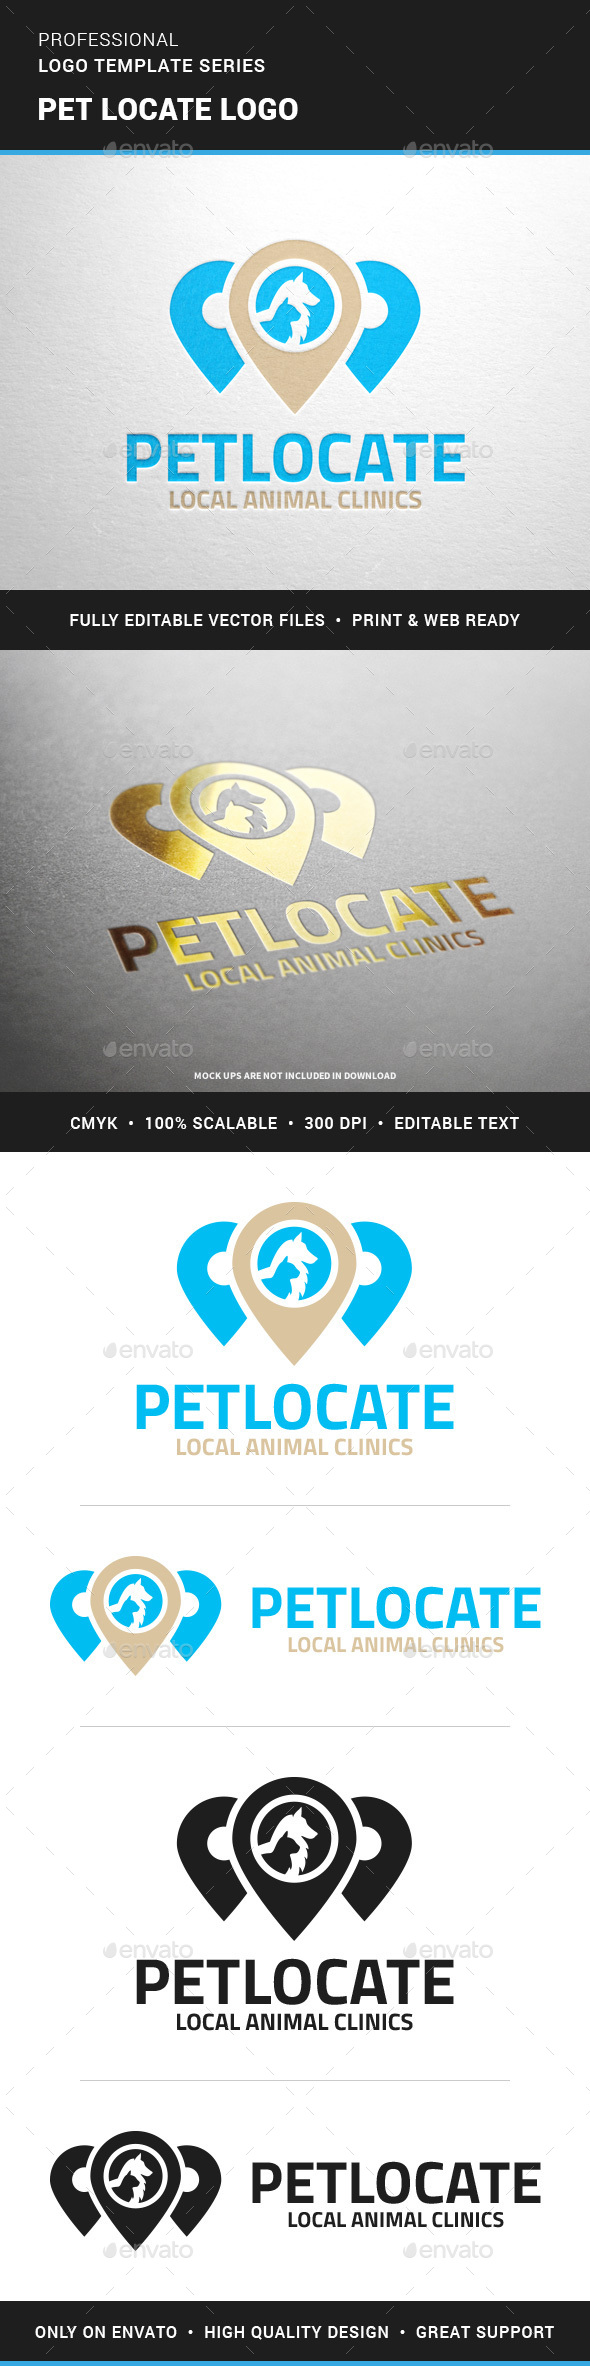 Pet Locate Logo Template - Animals Logo Templates